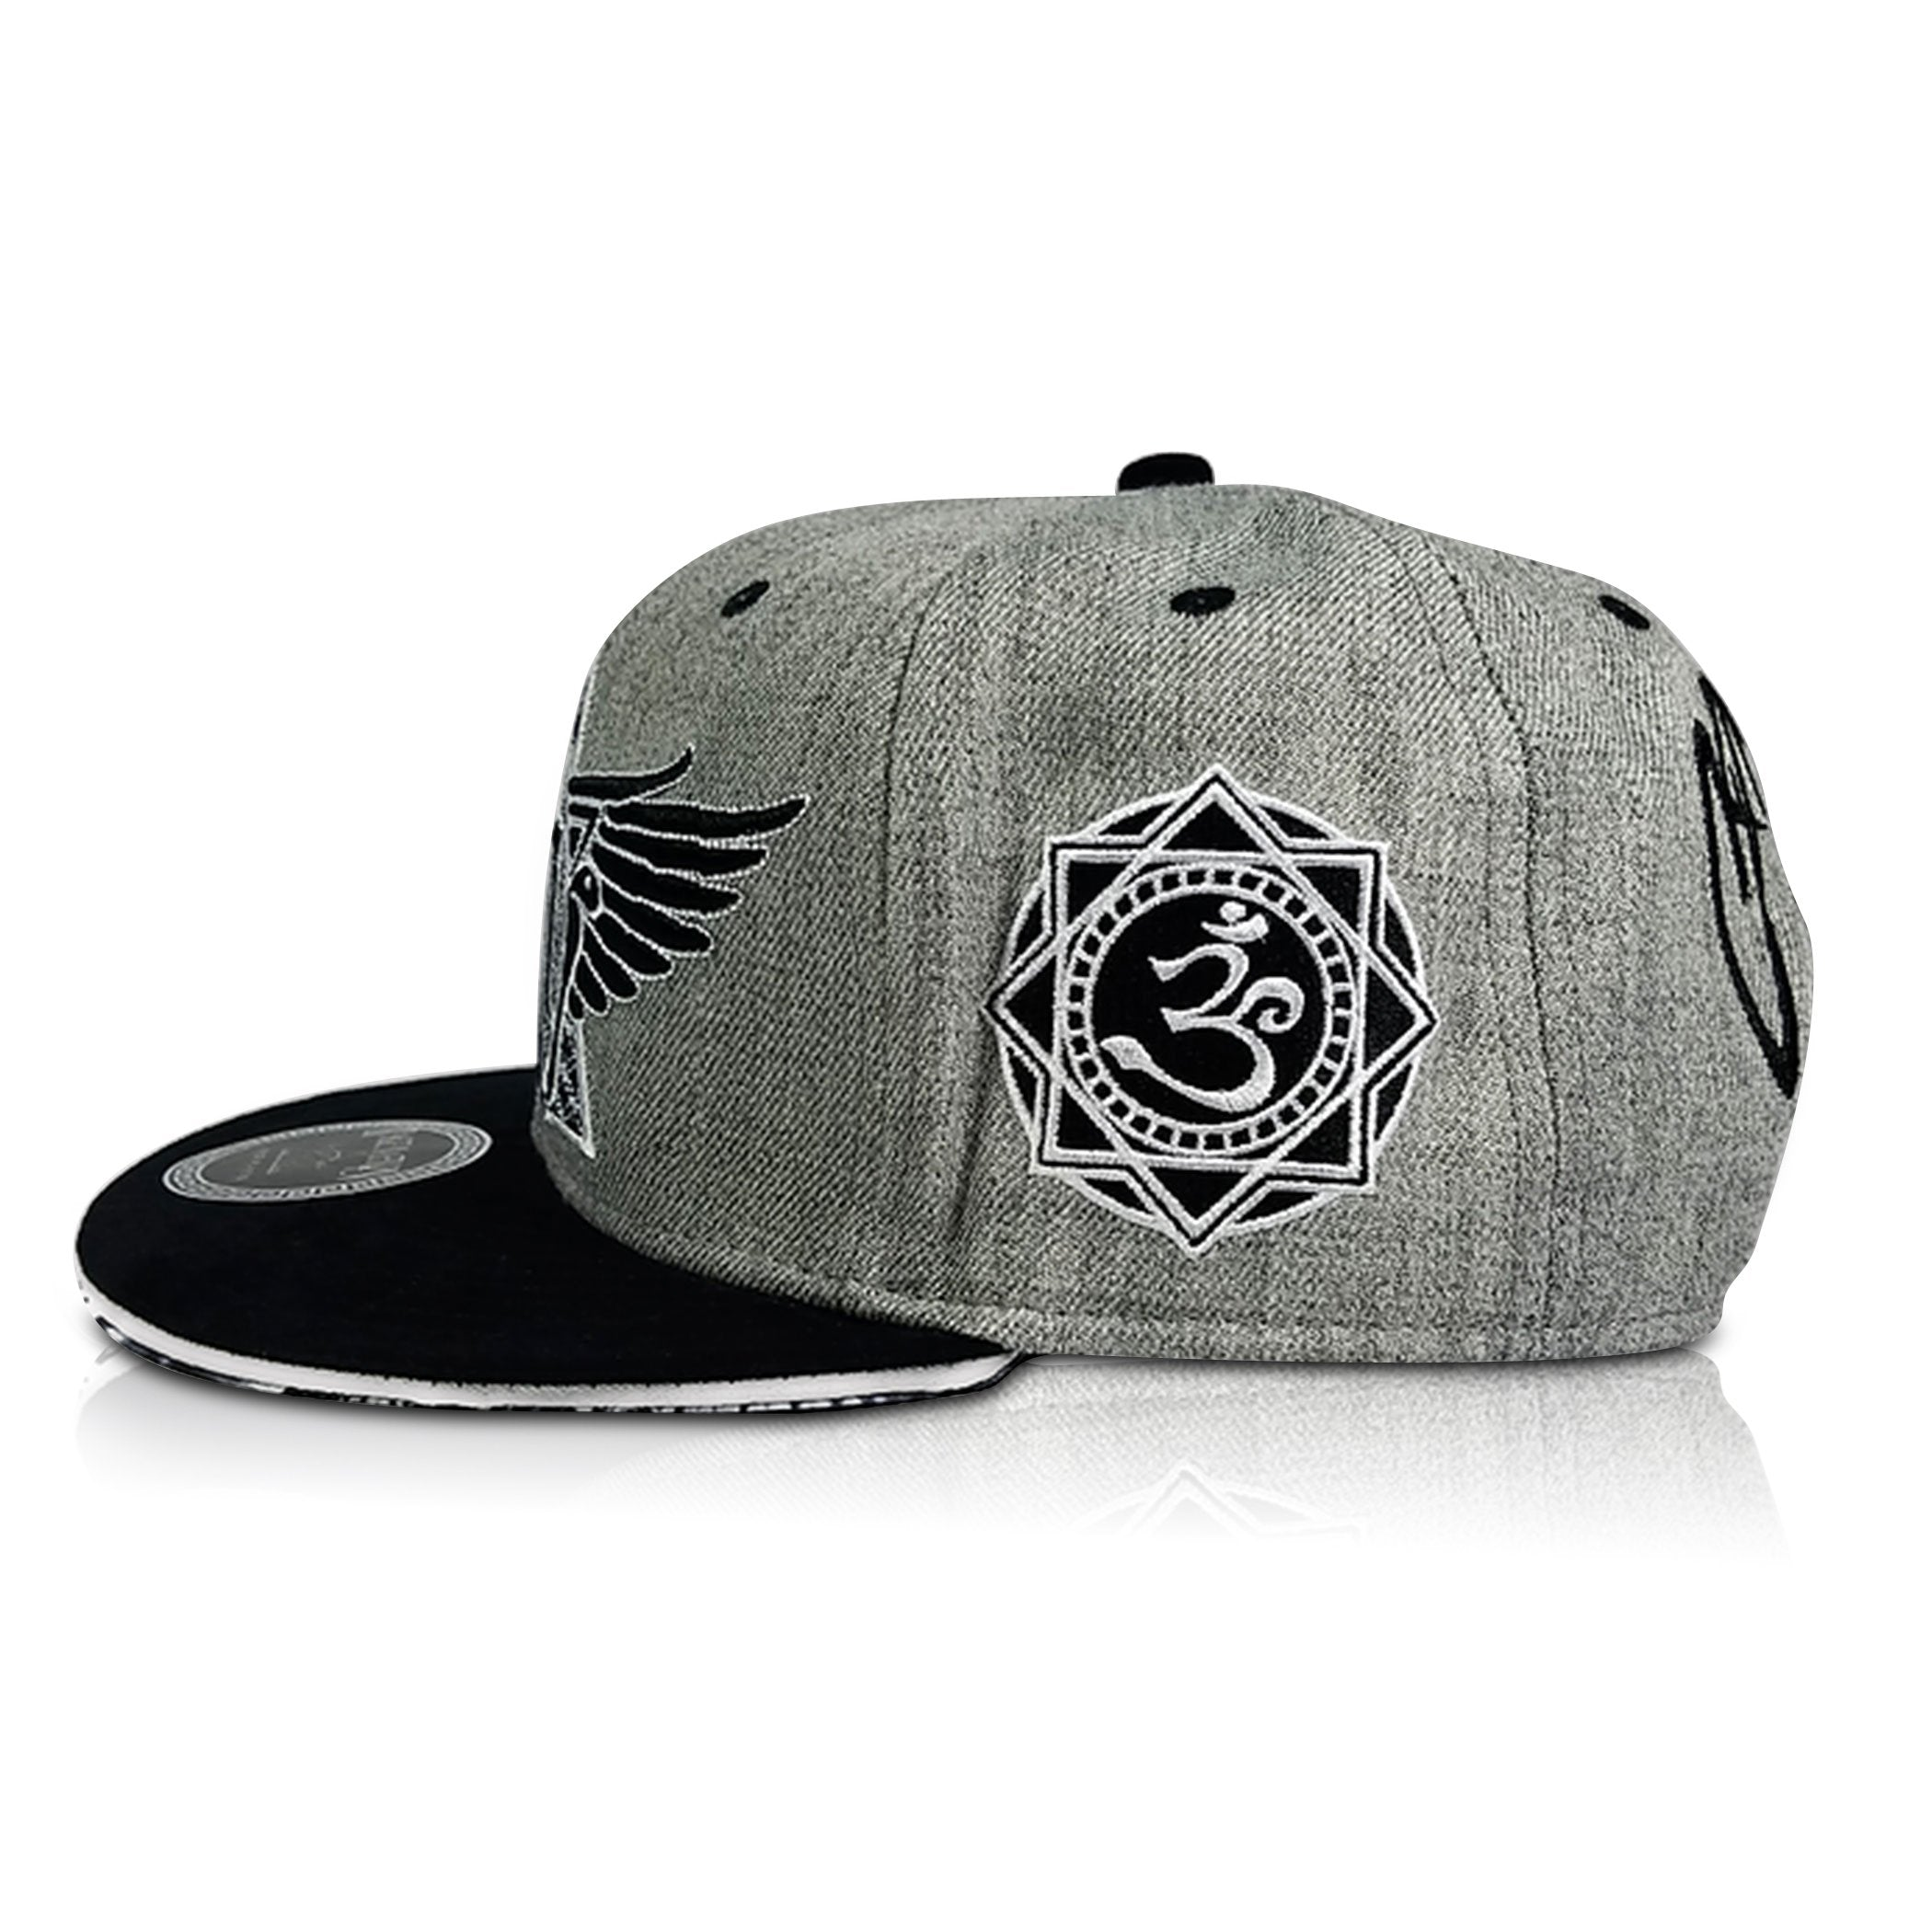 CONNECTED • Secret Pocket Snapback Hats